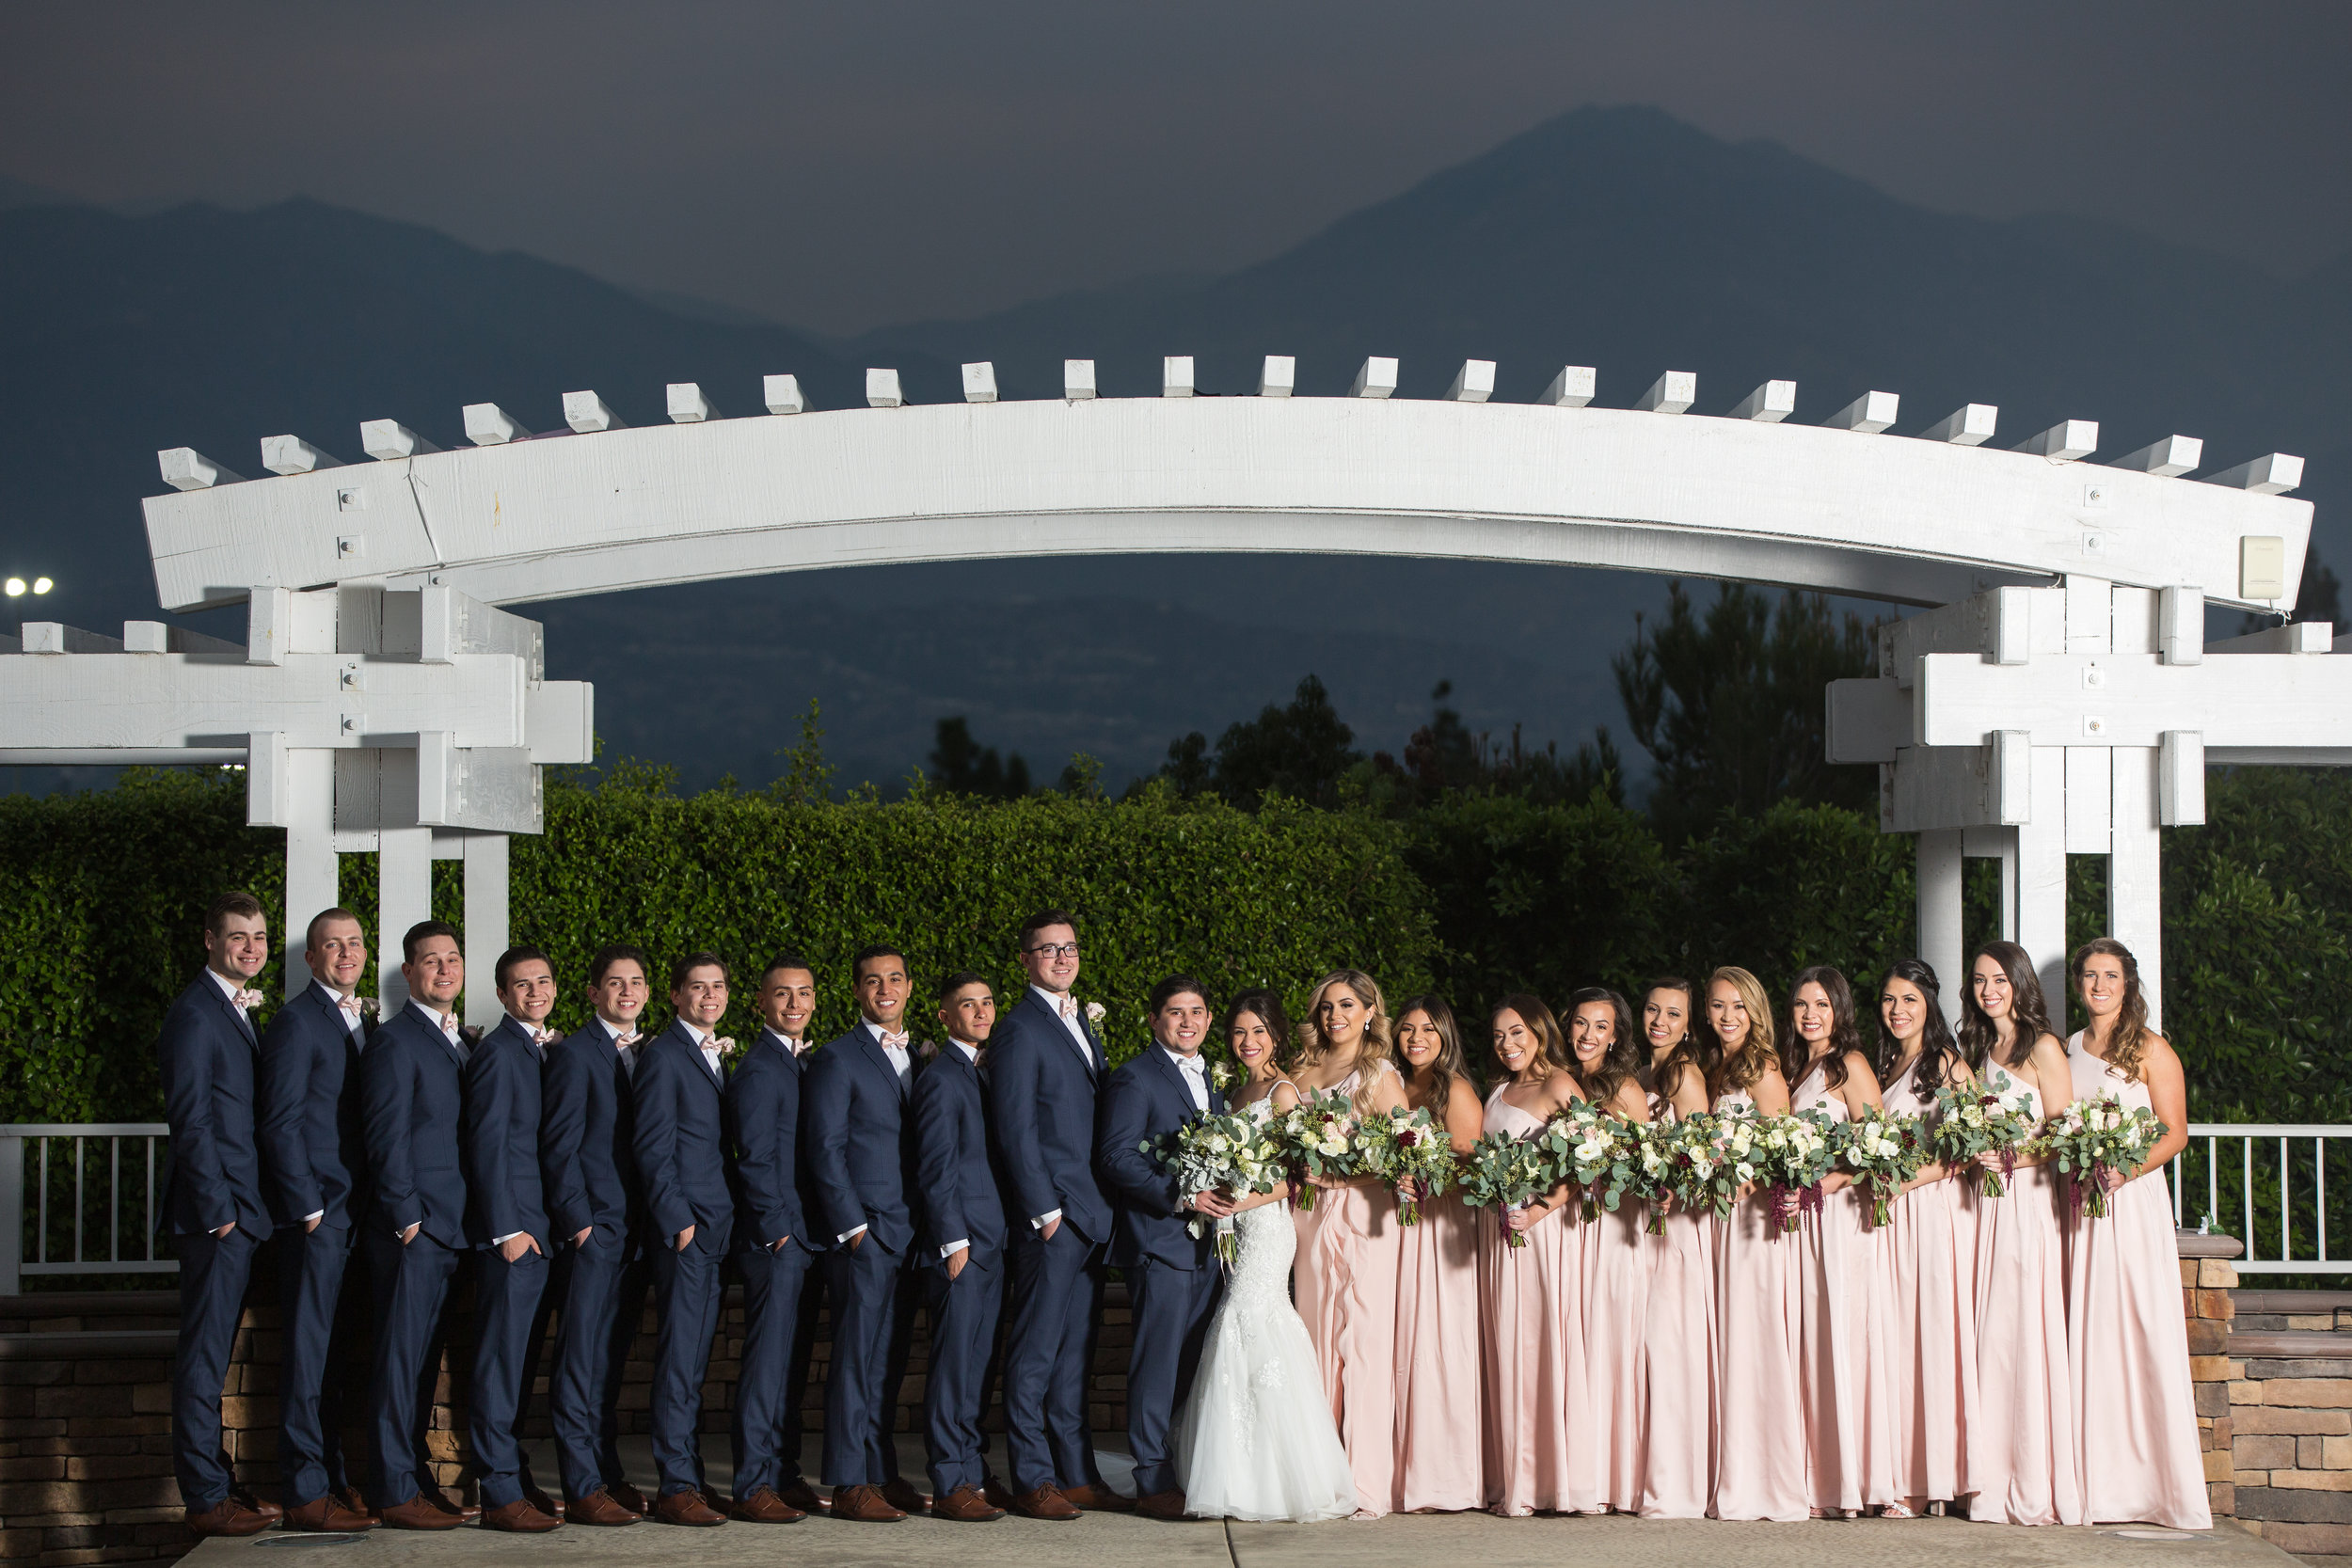 MountainMeadowsWeddingPhotos-Claudia&Trevor(404of713).jpg